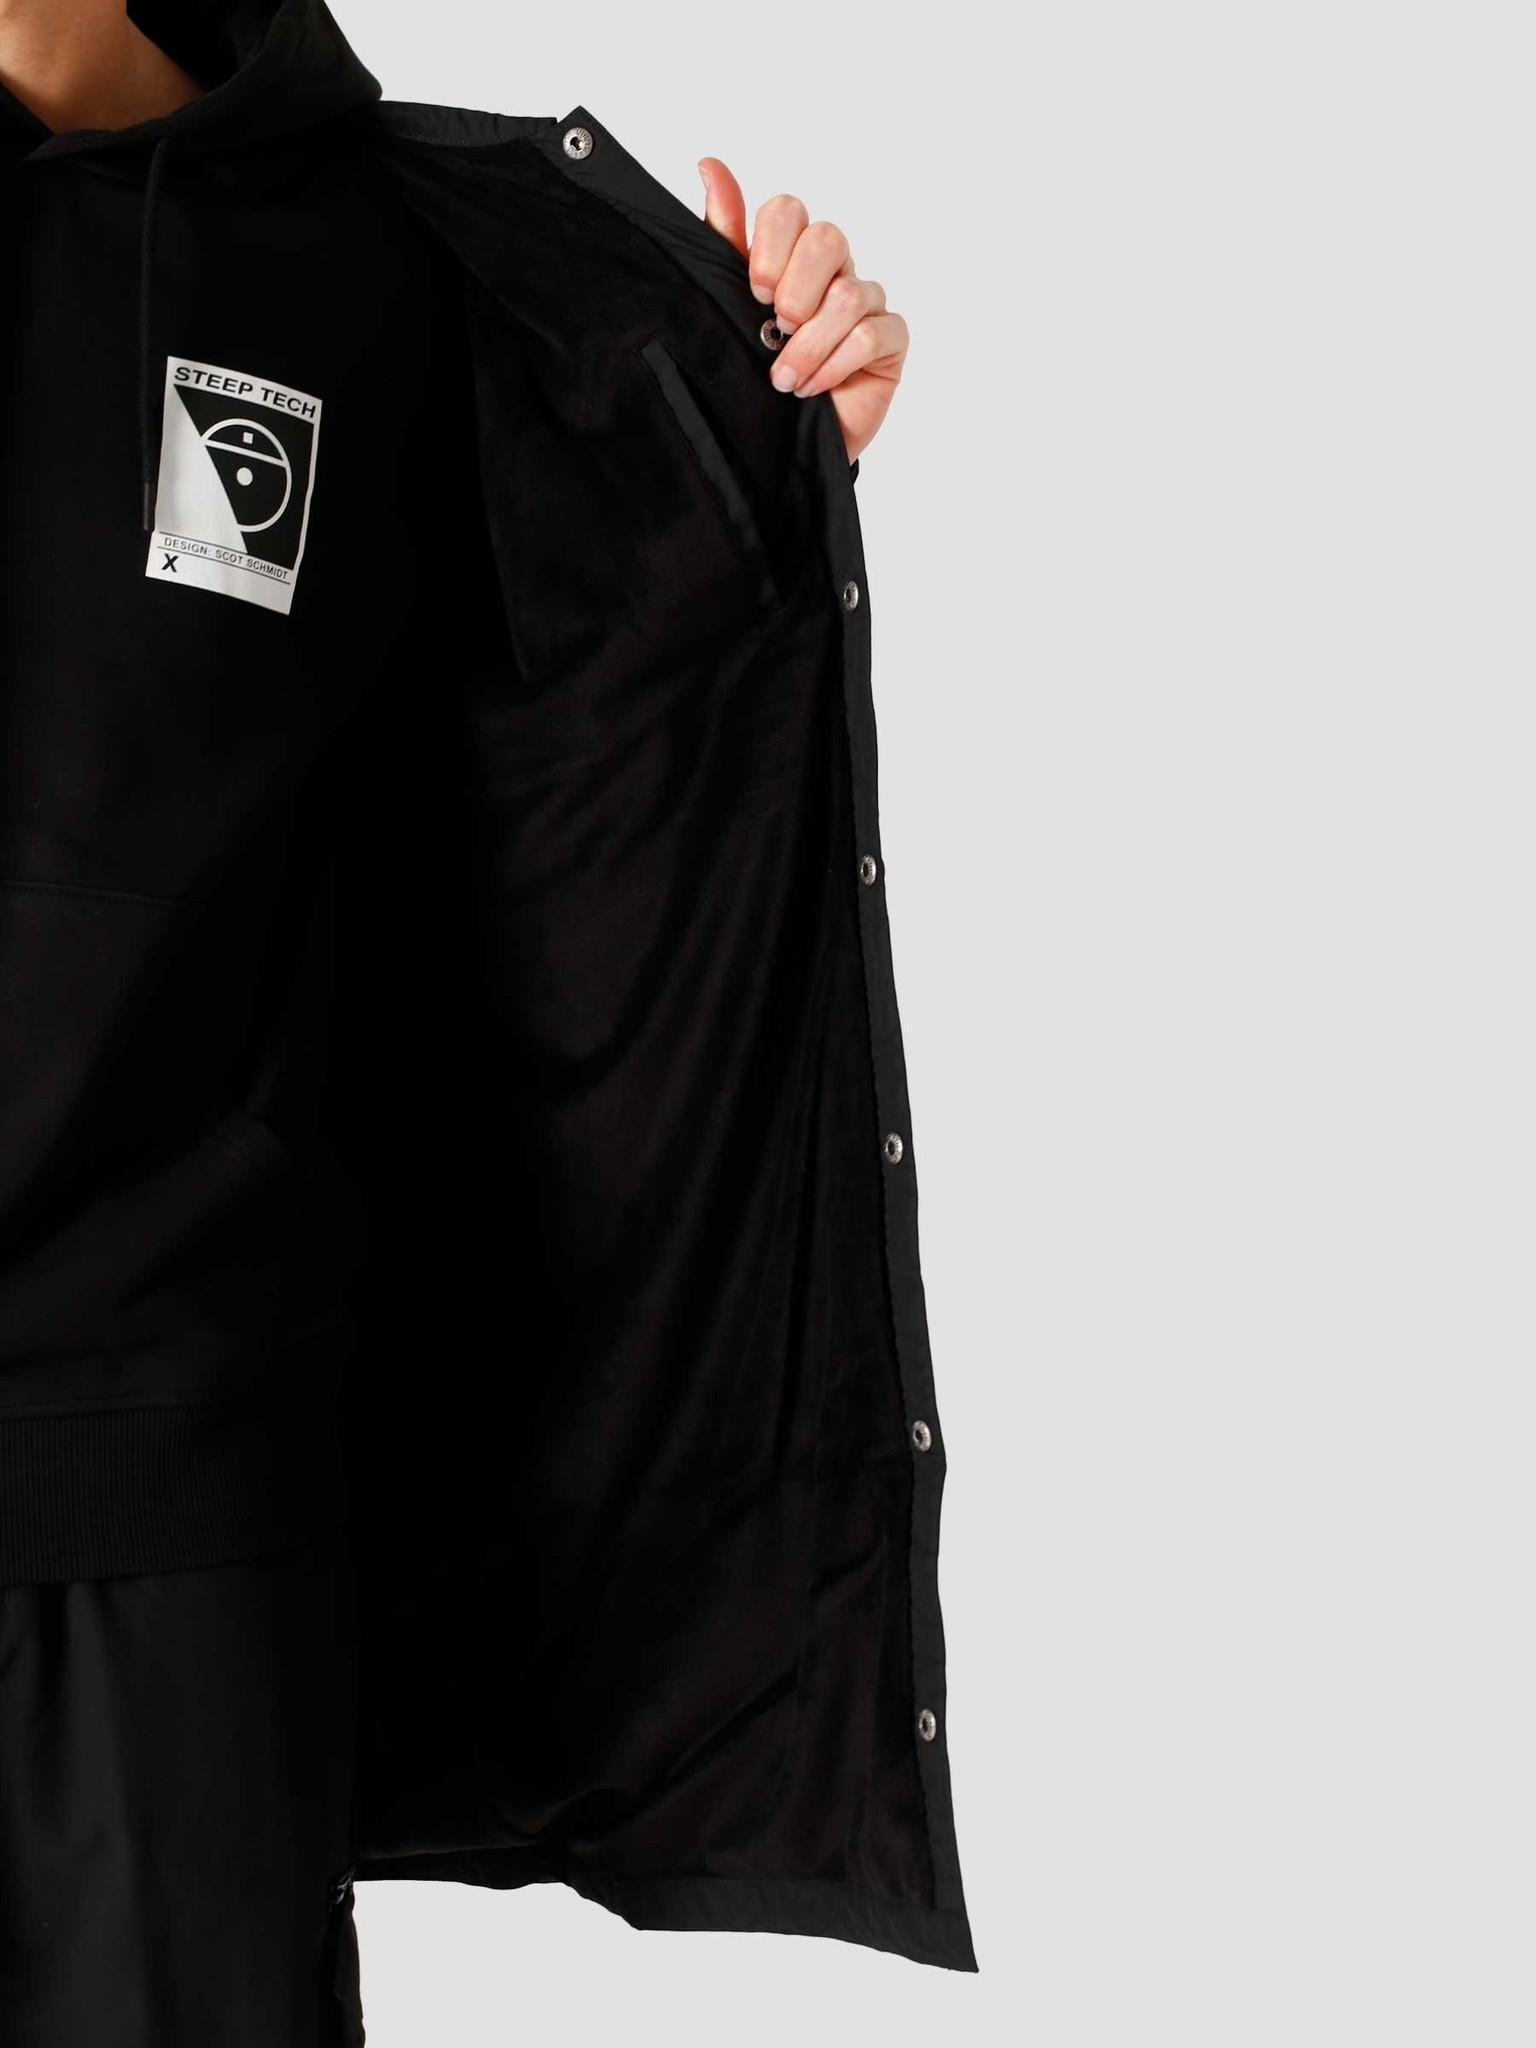 The North Face The North Face Telegraphic Coach Jacket Black NF0A4SWLJK3